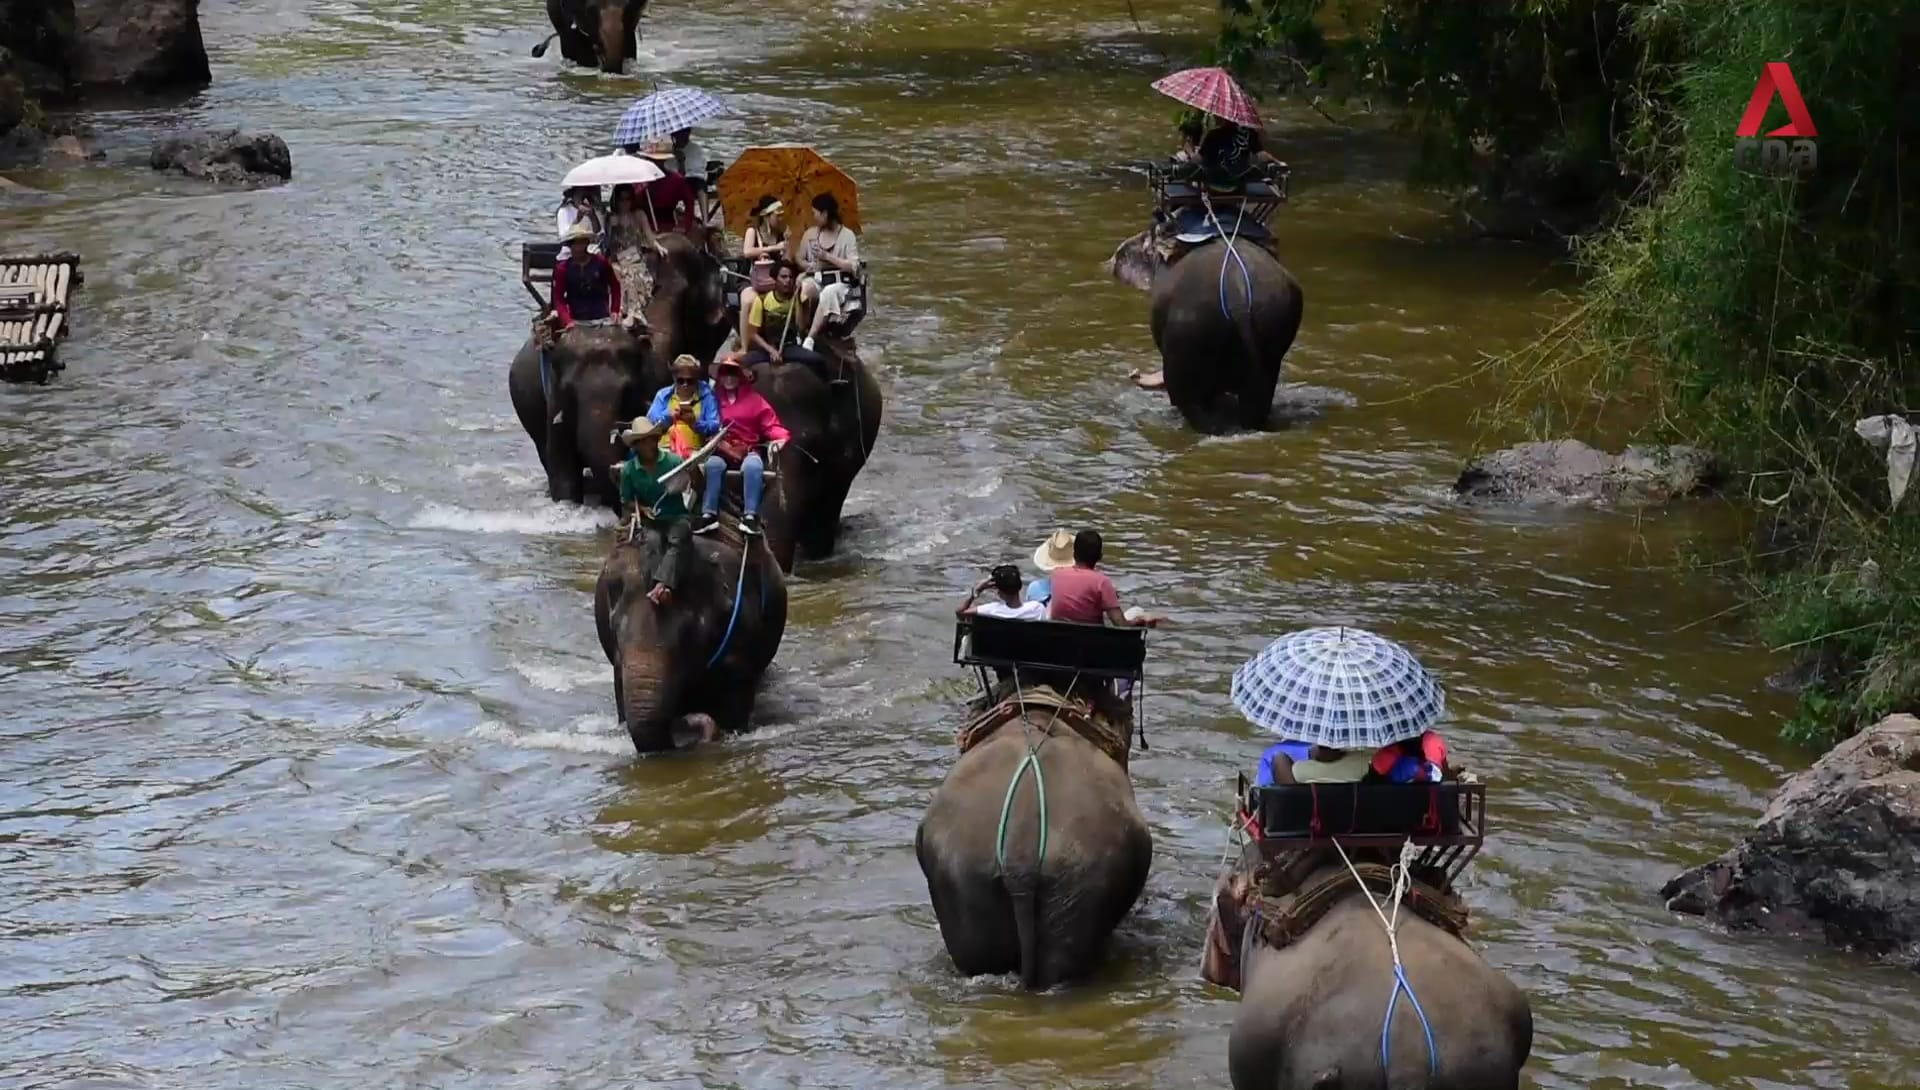 Behind the show: The making and breaking of Thailand's elephants | Video